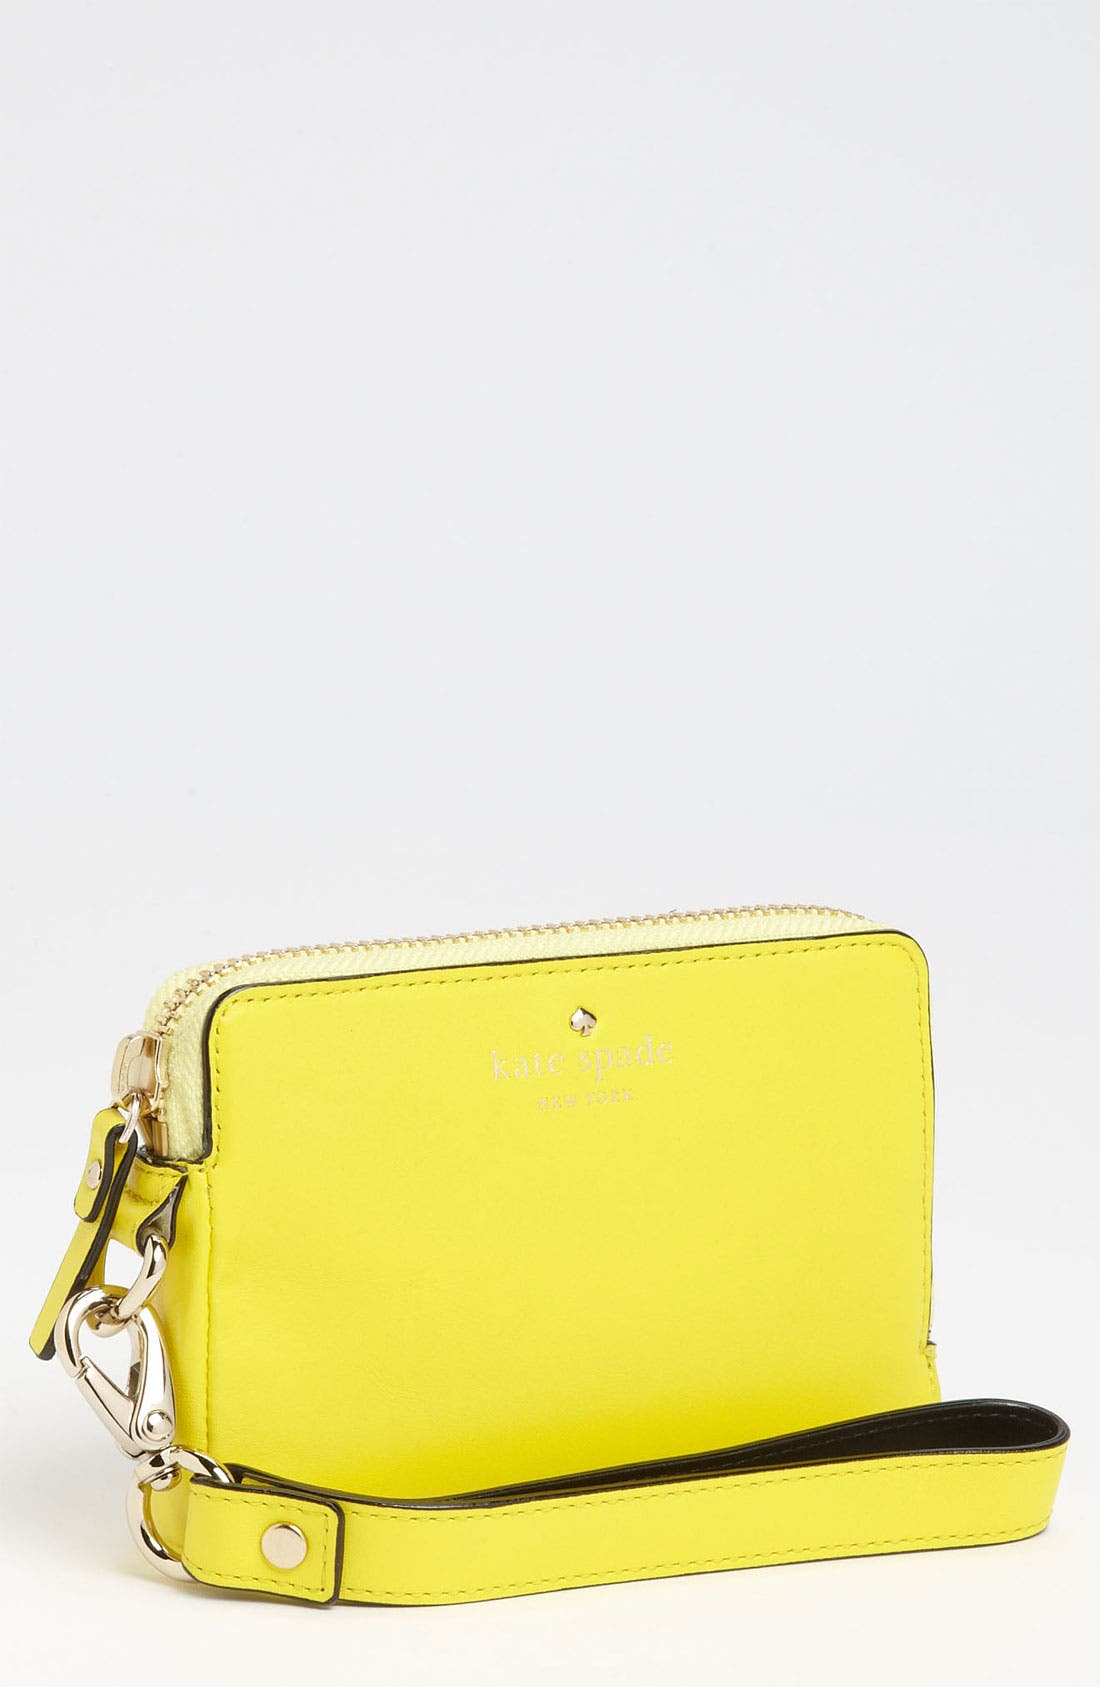 Alternate Image 1 Selected - kate spade new york 'julia' wristlet